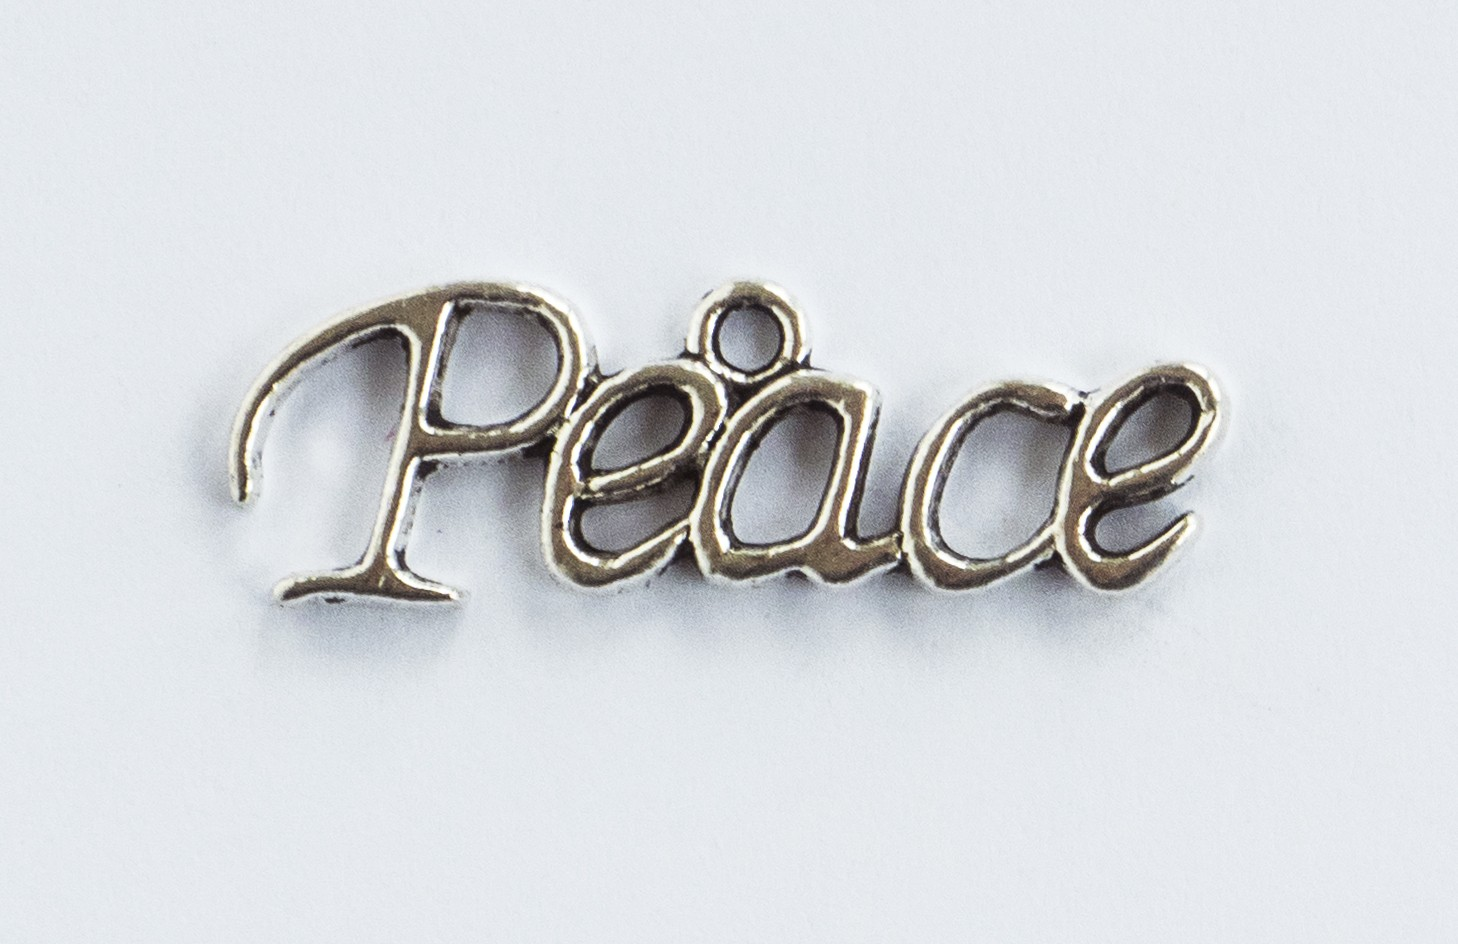 Peace Silver Tone Charms - 3 Pack